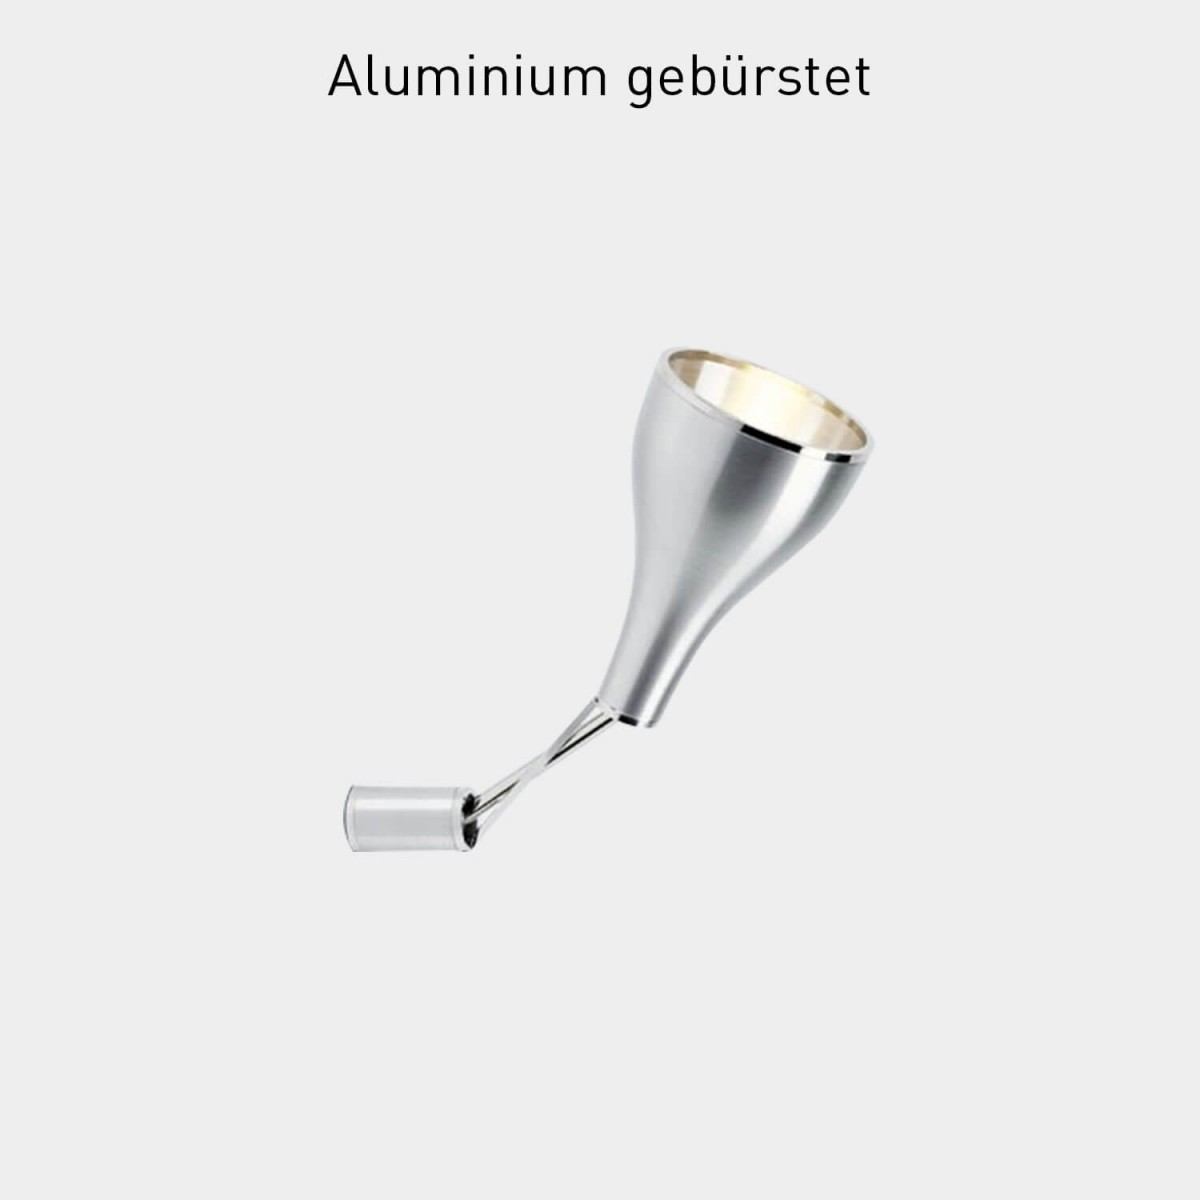 Serien Lighting One Eighty Wall - Aluminium gebürstet